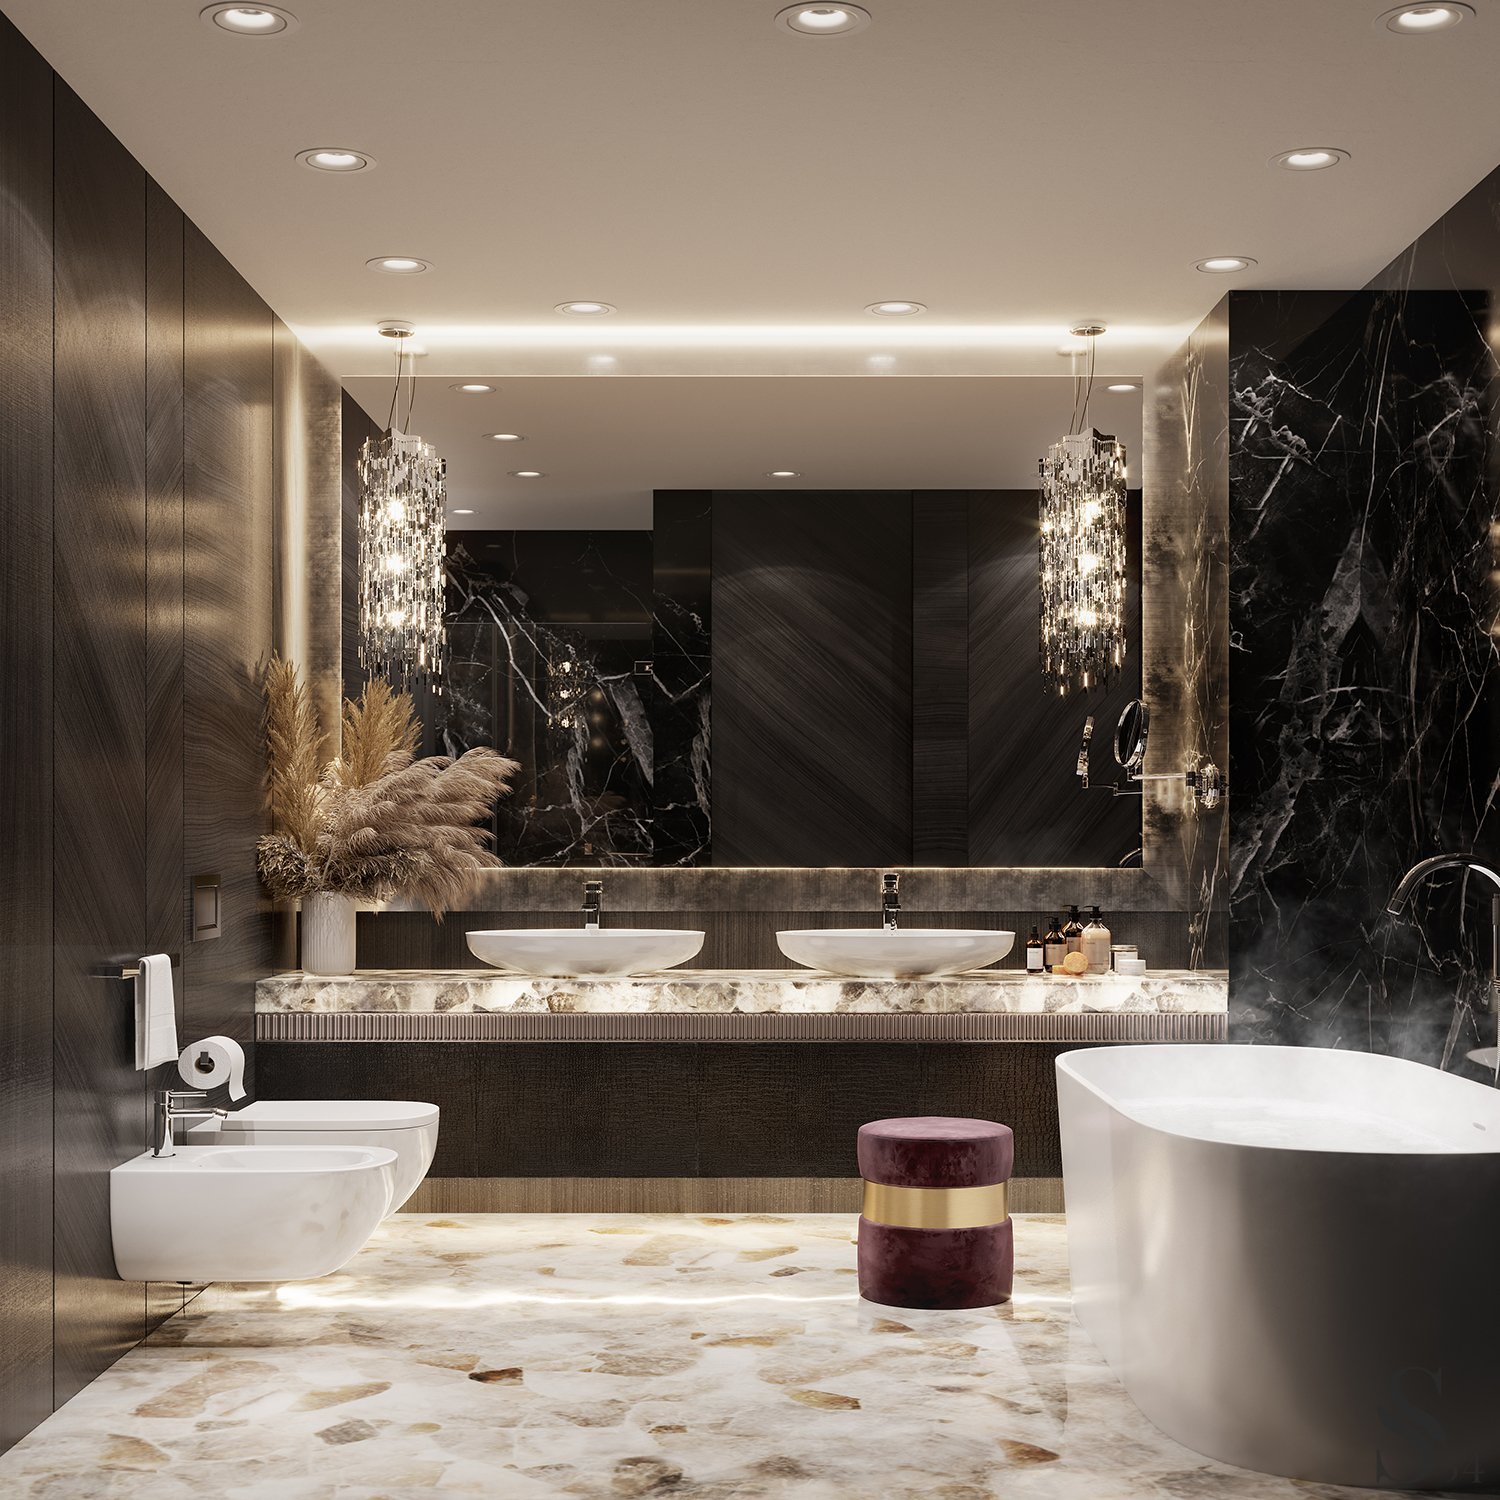 Bathroom1_001_nologo.jpg